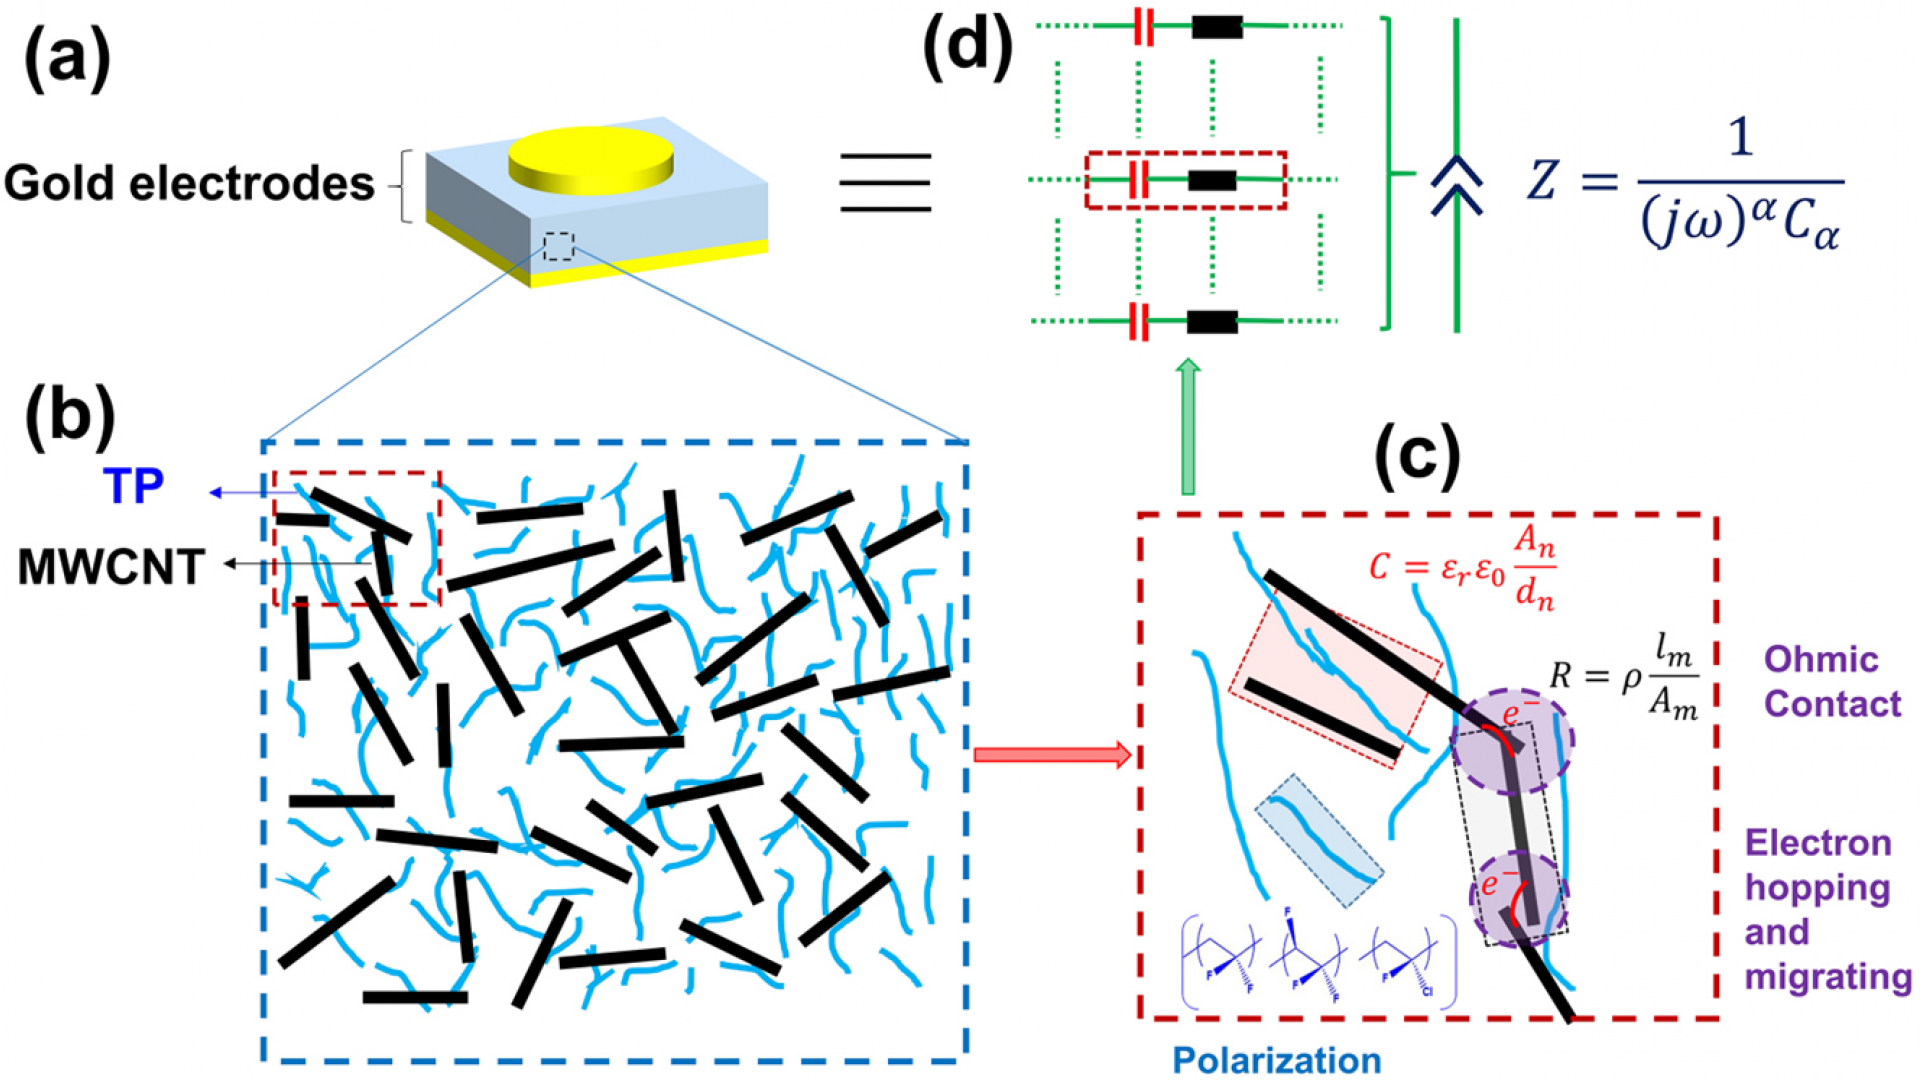 Towards fractional-order capacitors with broad tunable constant phase angles: Multi-walled carbon nanotube-polymer composite as a case study